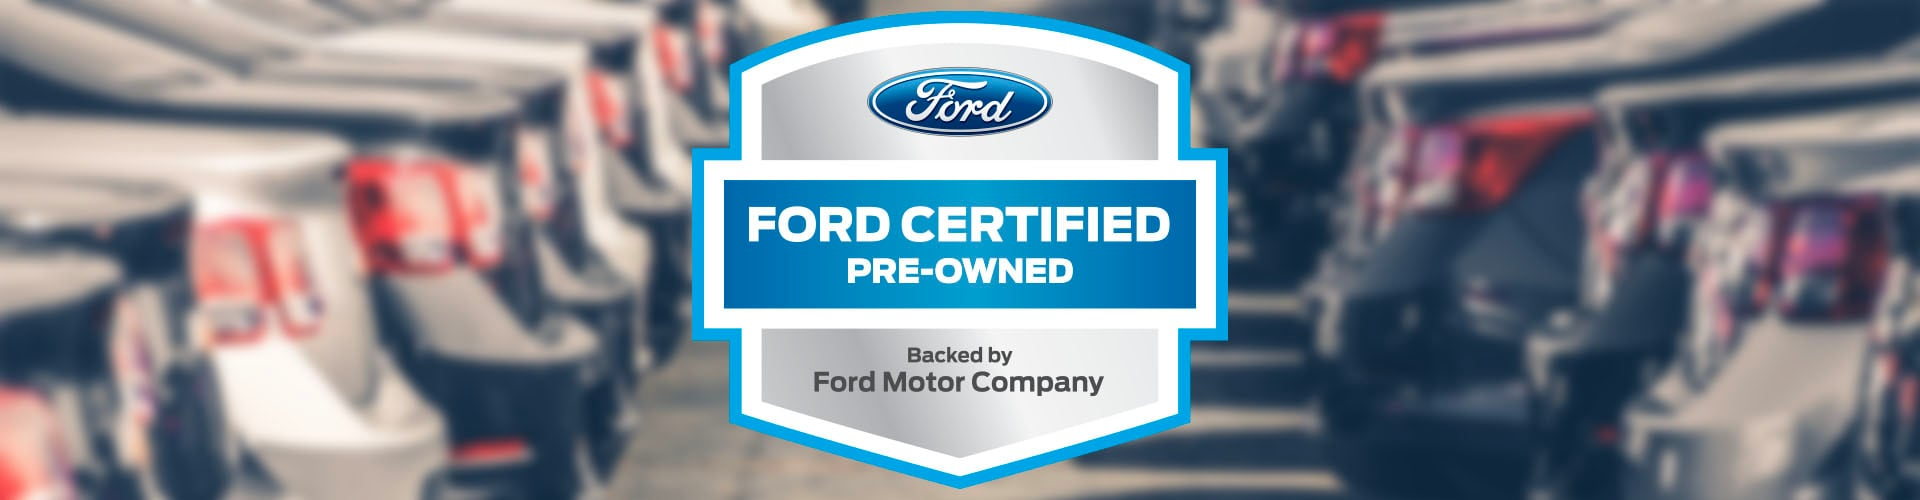 My Ford Benefits >> Ford Cpo Program Benefits Ace Ford My Local Ford Dealership